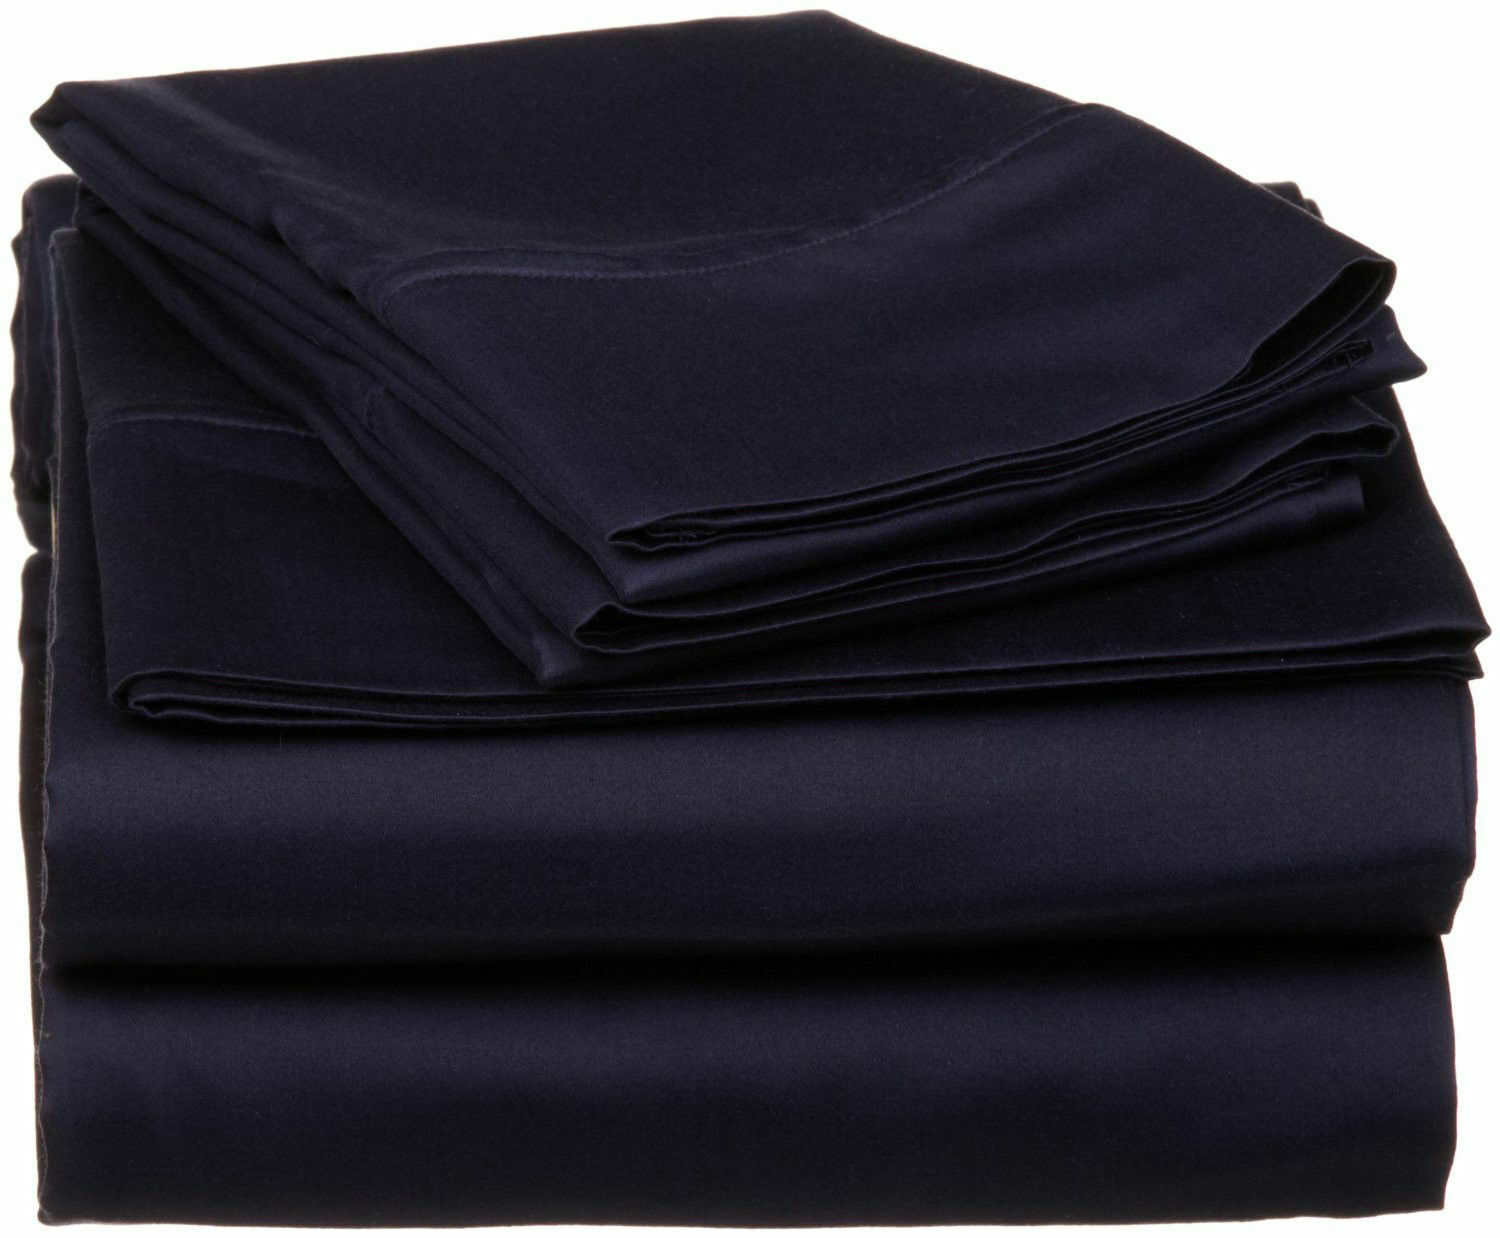 Water Bed Sheet Set 100%Egyptian Cotton 1000 Thread Count Navy blueeeee Solid